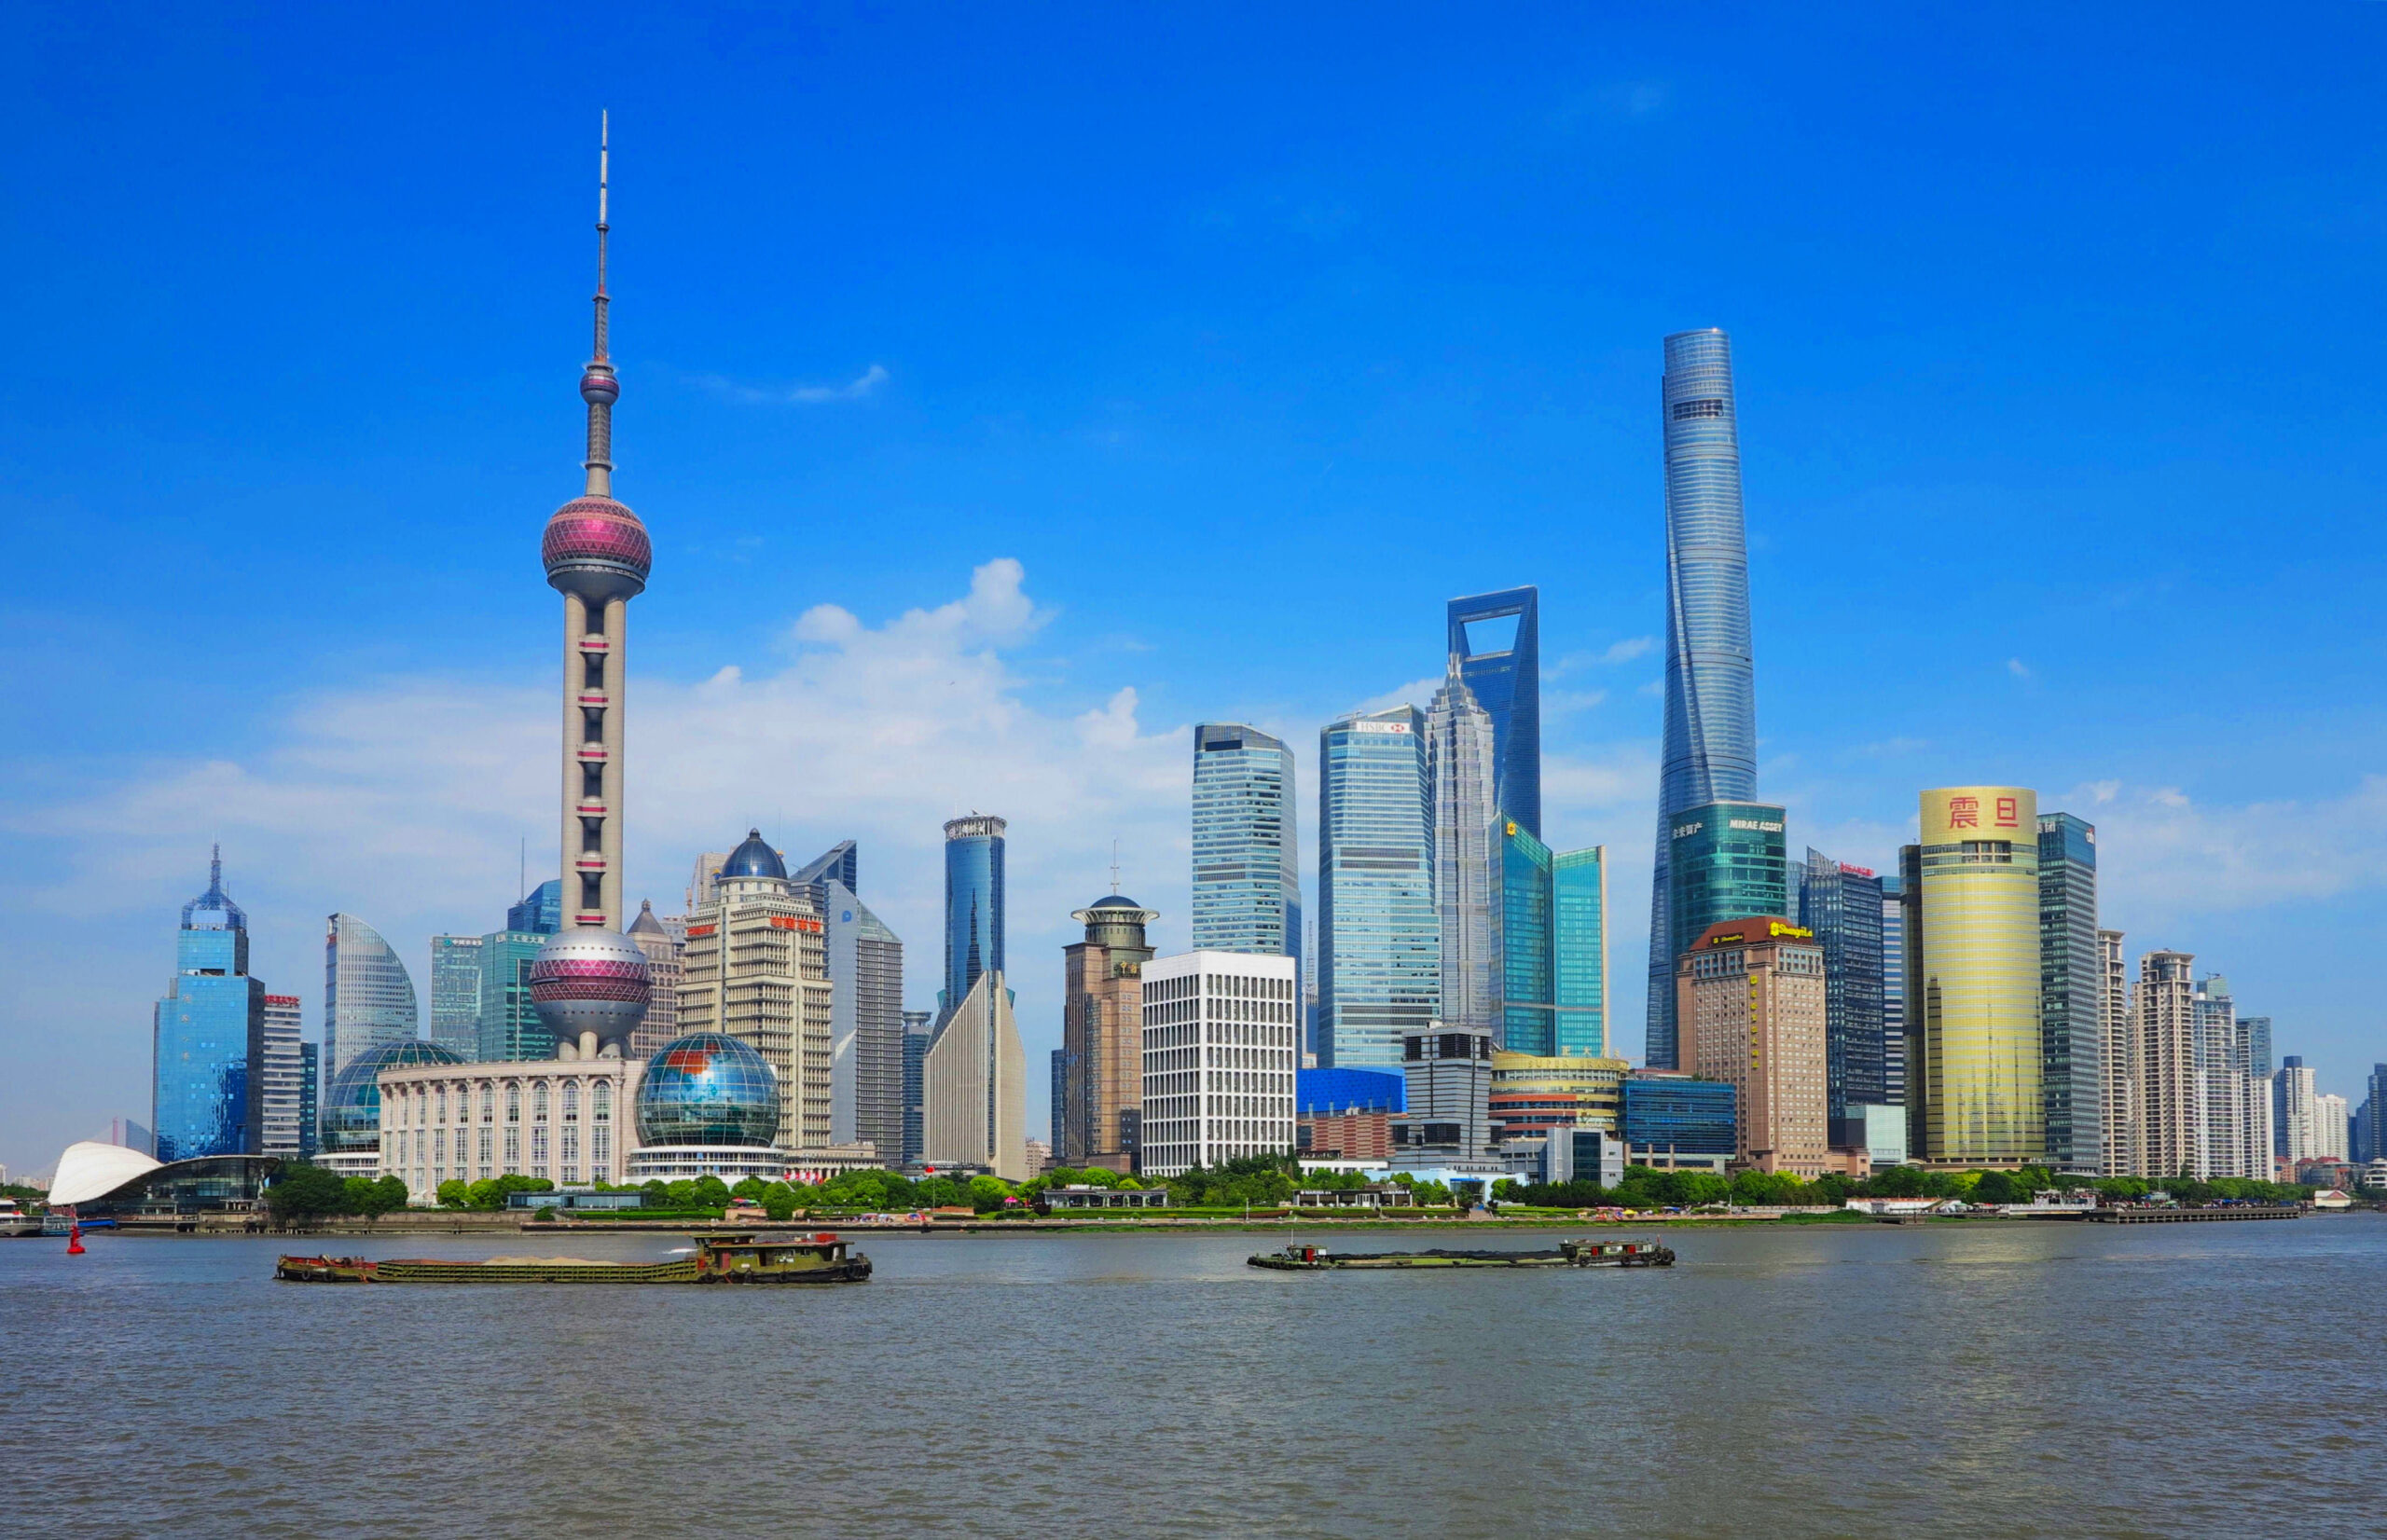 Shanghai's Pudong district from The Bund. (CC0, Wikimedia Commons)